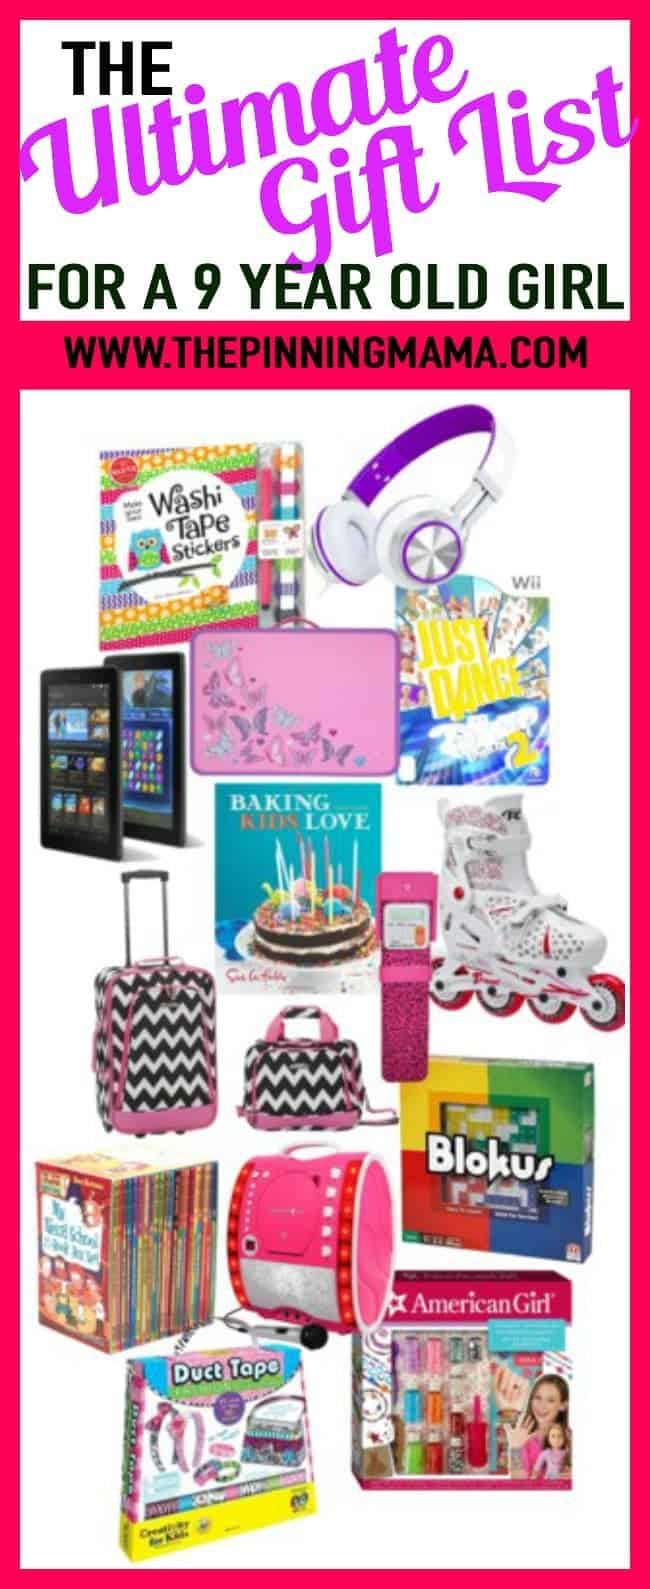 The ultimate gift list for a 9 year old girl the pinning mama the ultimate list of gift ideas for a 9 year old girl see 25 negle Choice Image